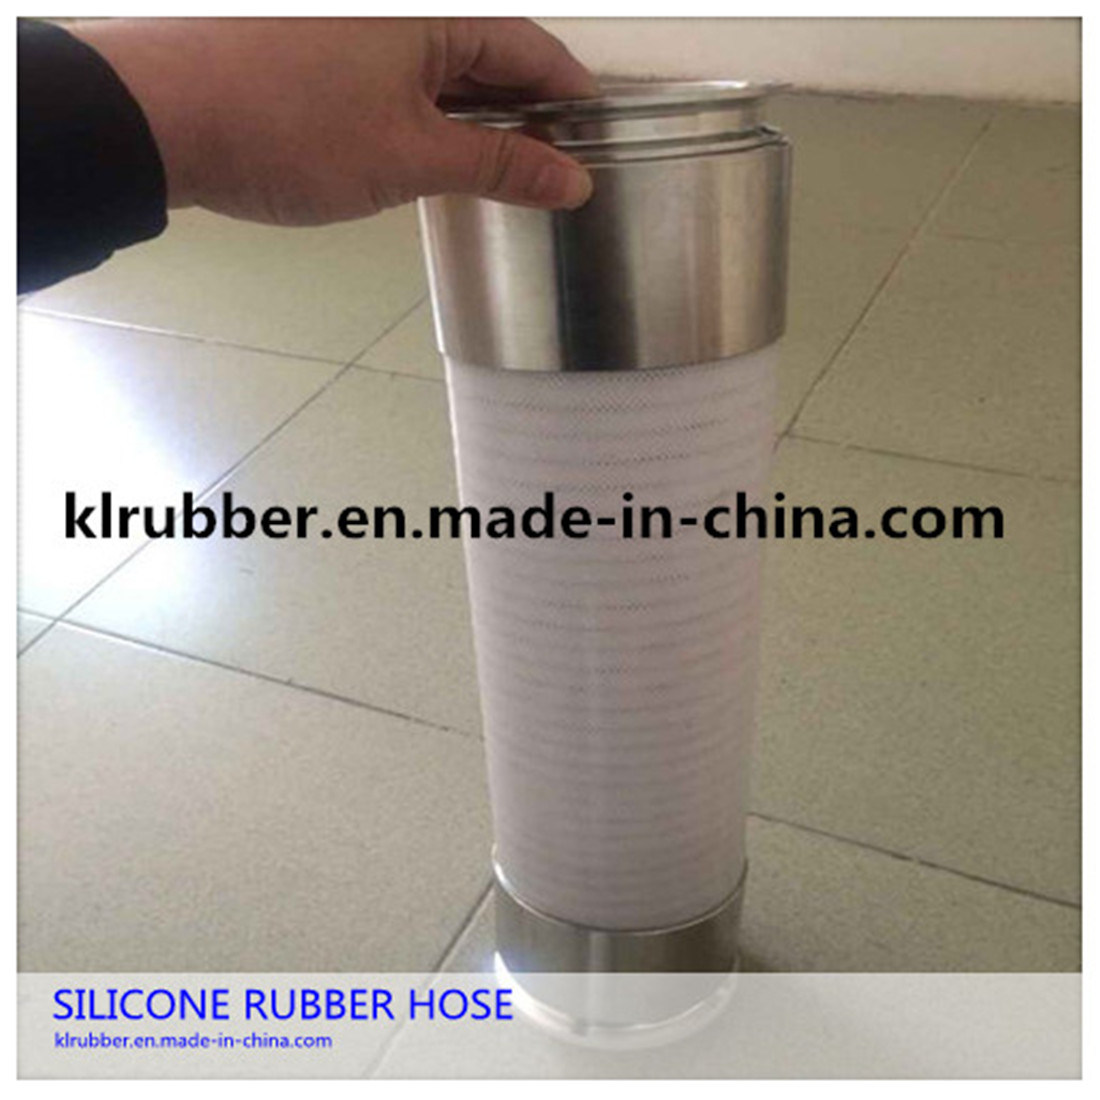 Large Diameter No Smell Medical Grade Silicone Rubber Vacuum Hose